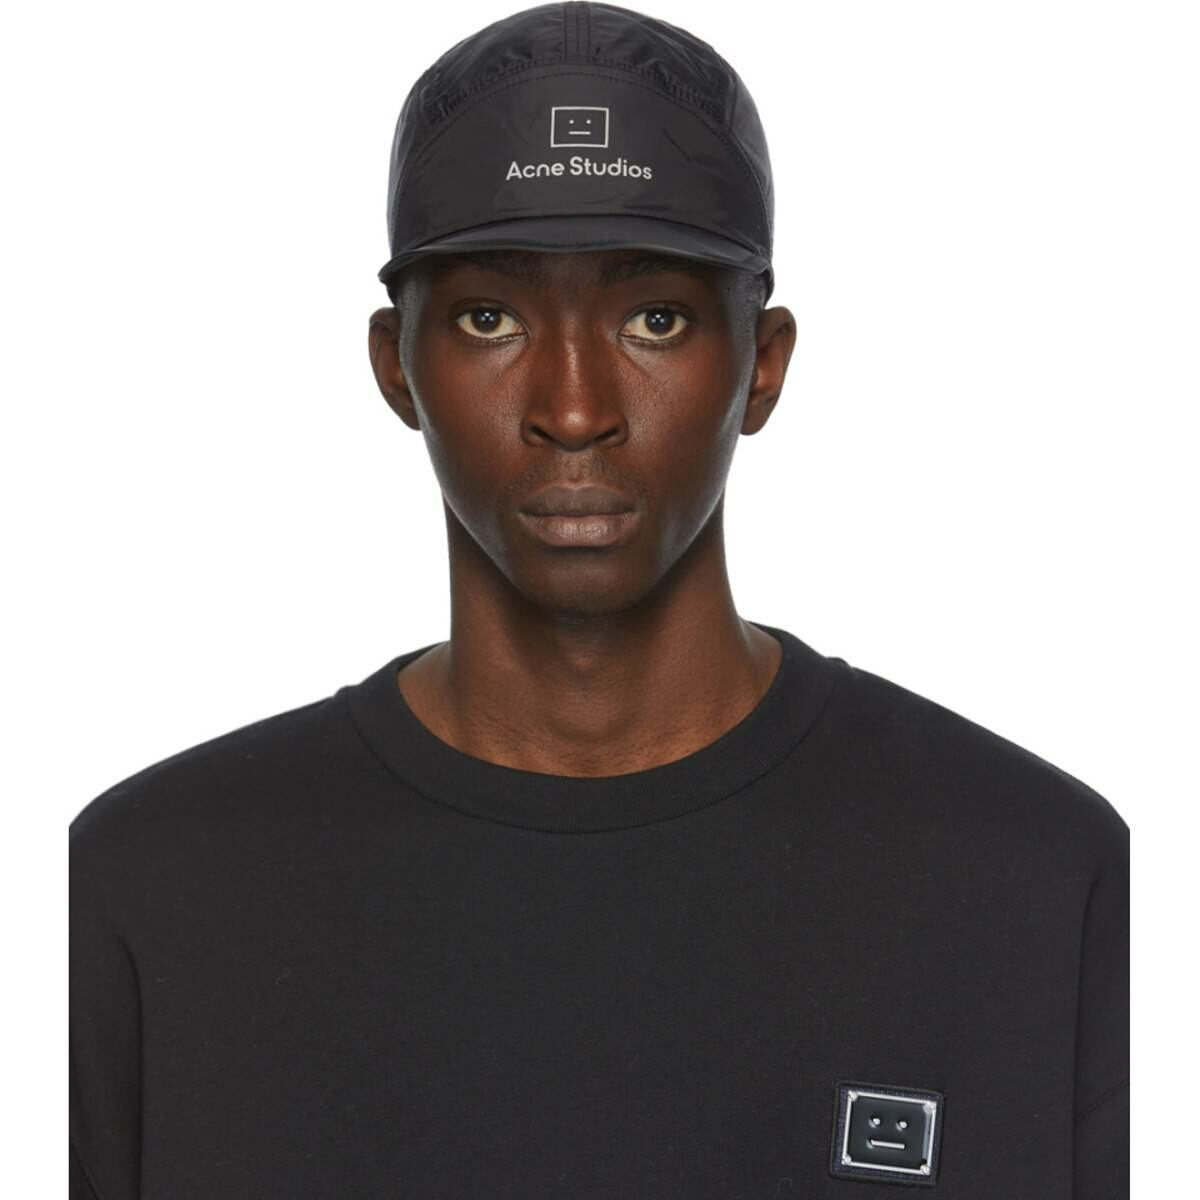 Acne Studios Black Crideli Cap Ssense USA MEN Men ACCESSORIES Mens CAPS